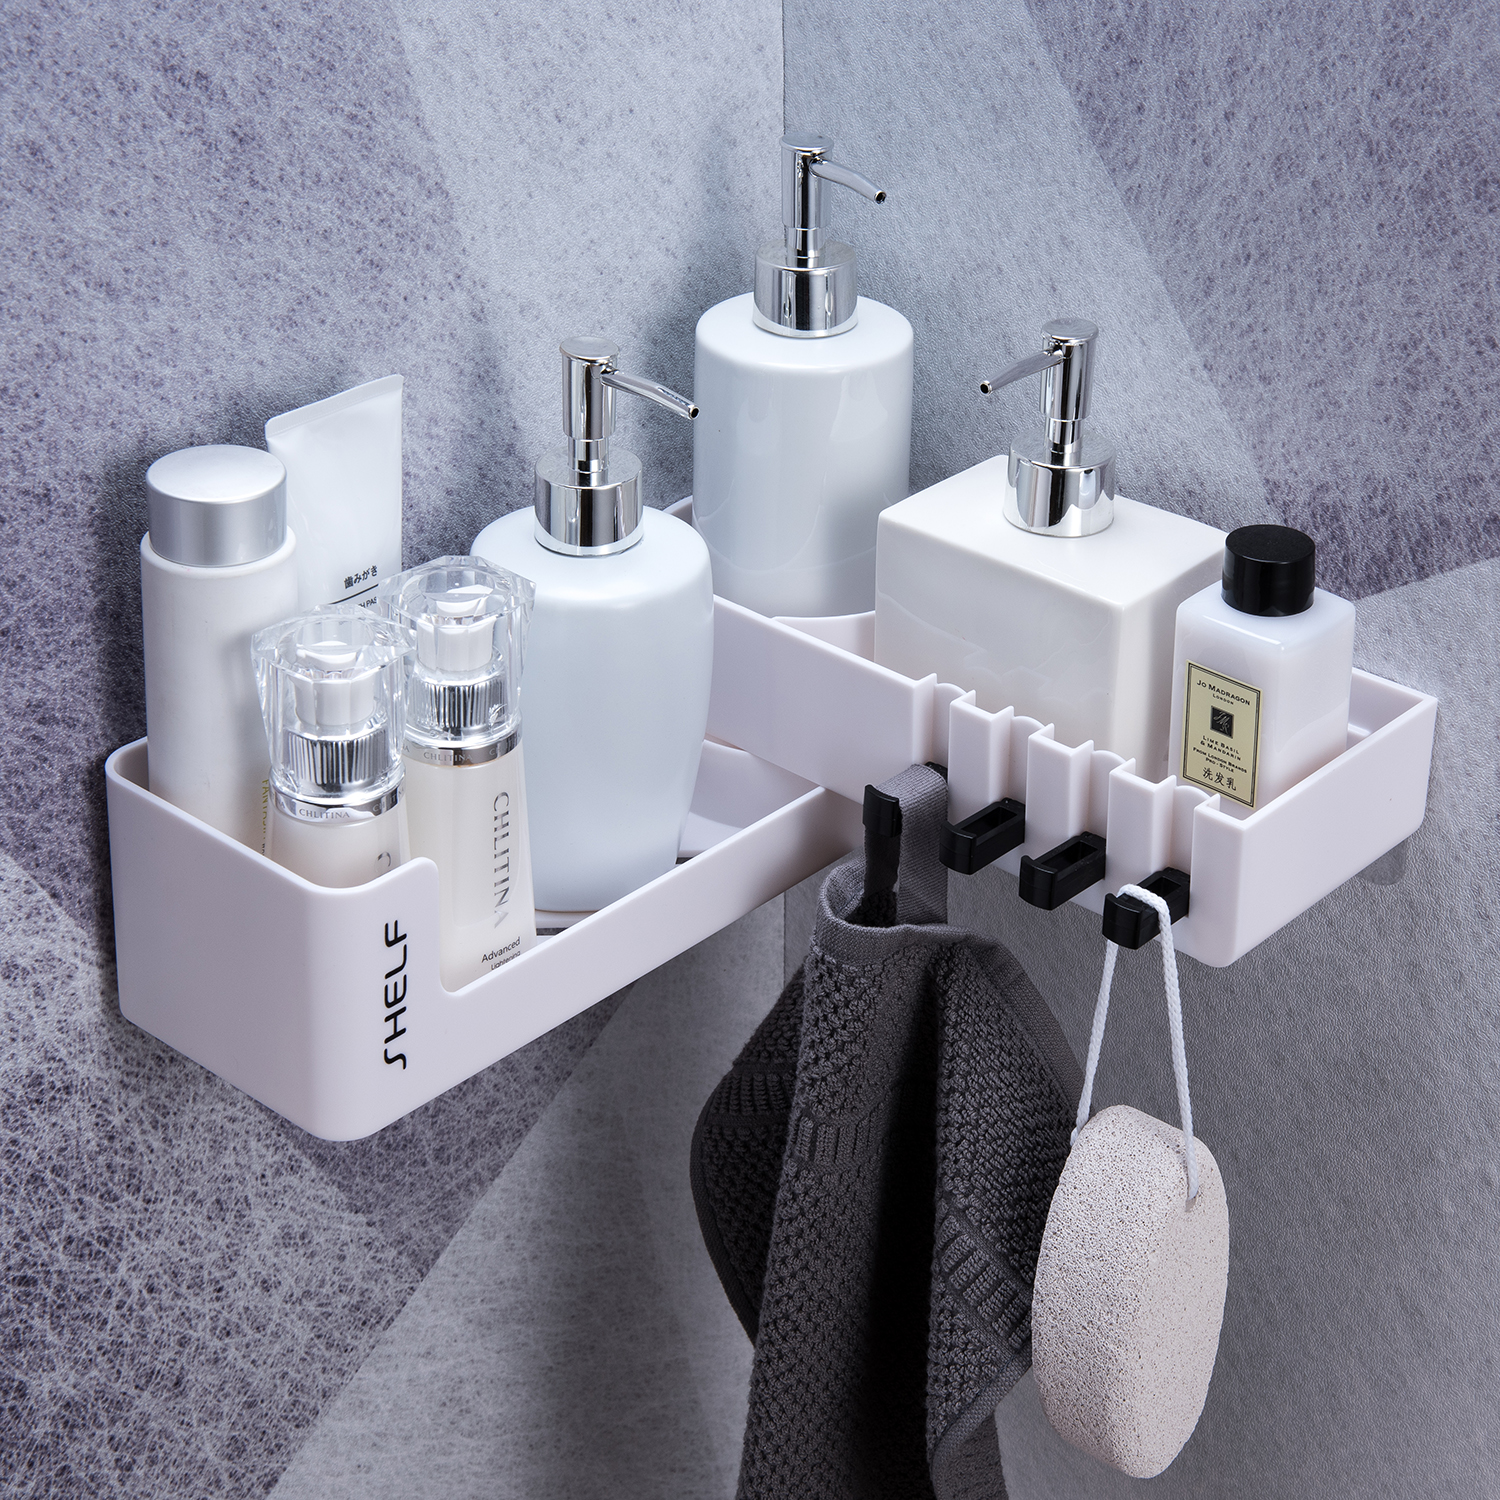 Rotatable Wall Mounted Bathroom Organizer With 4 Hook For Storage Shower Gel And Shampoo